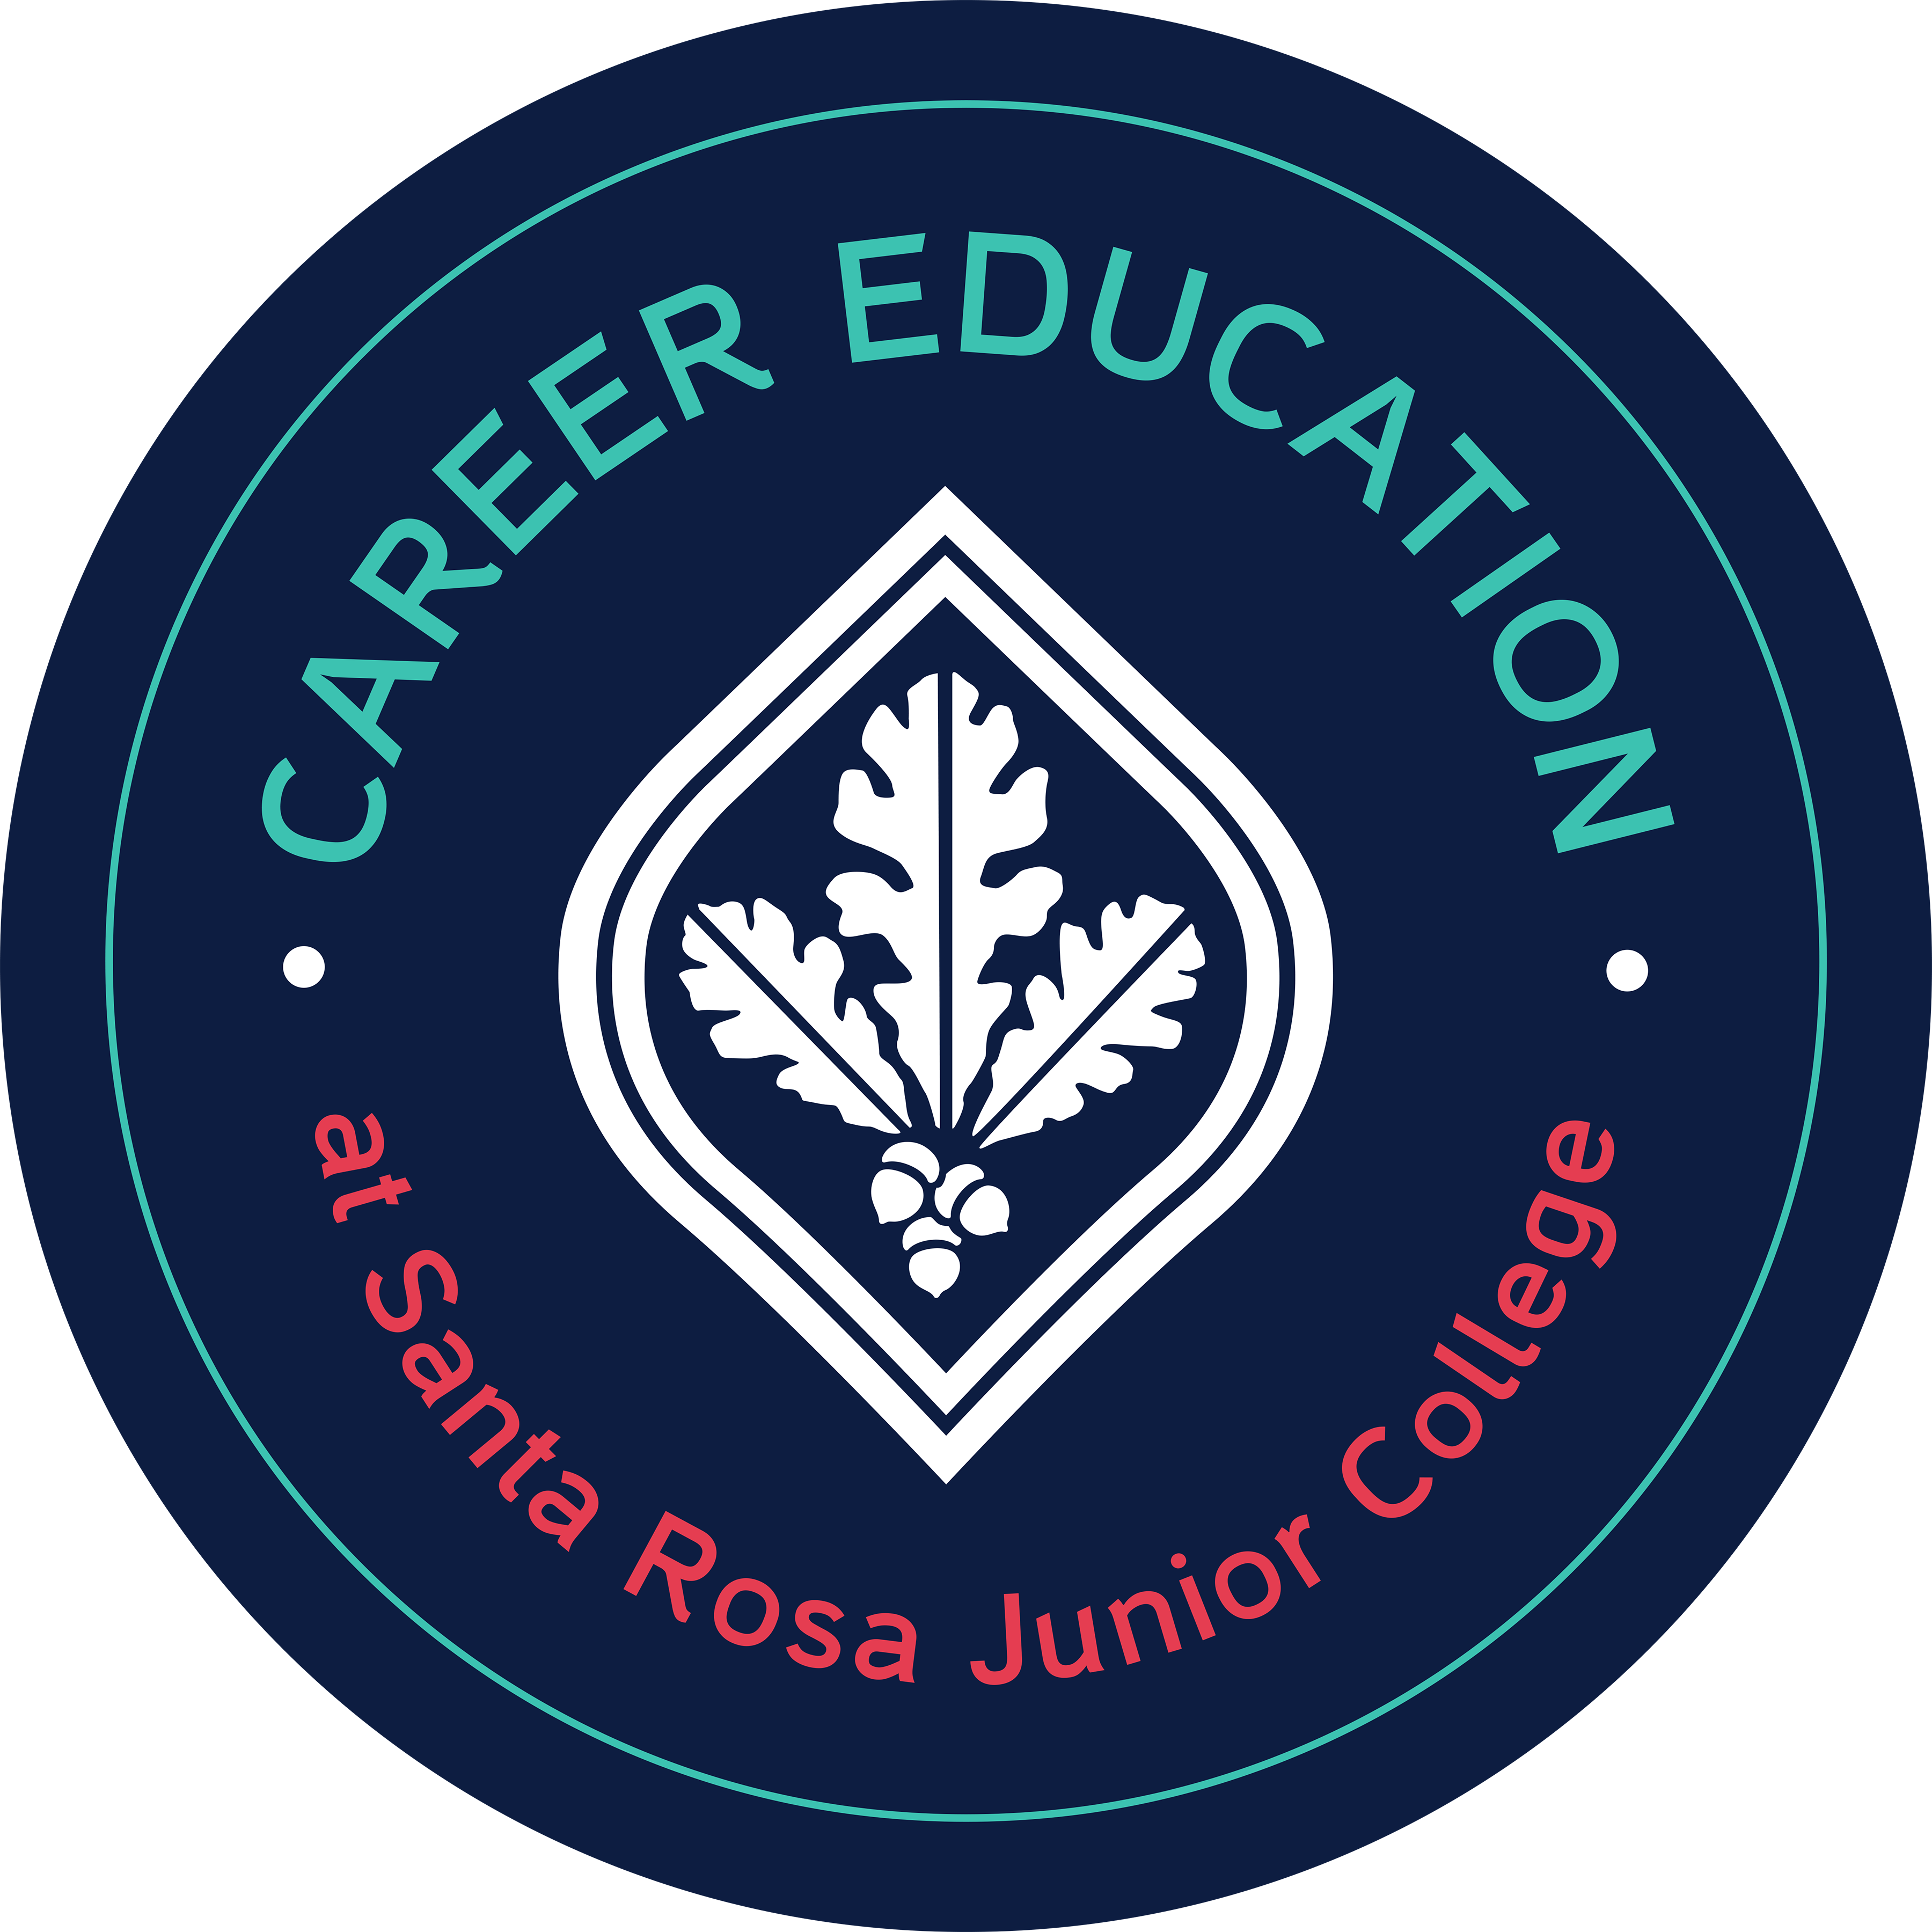 Career Education Logo